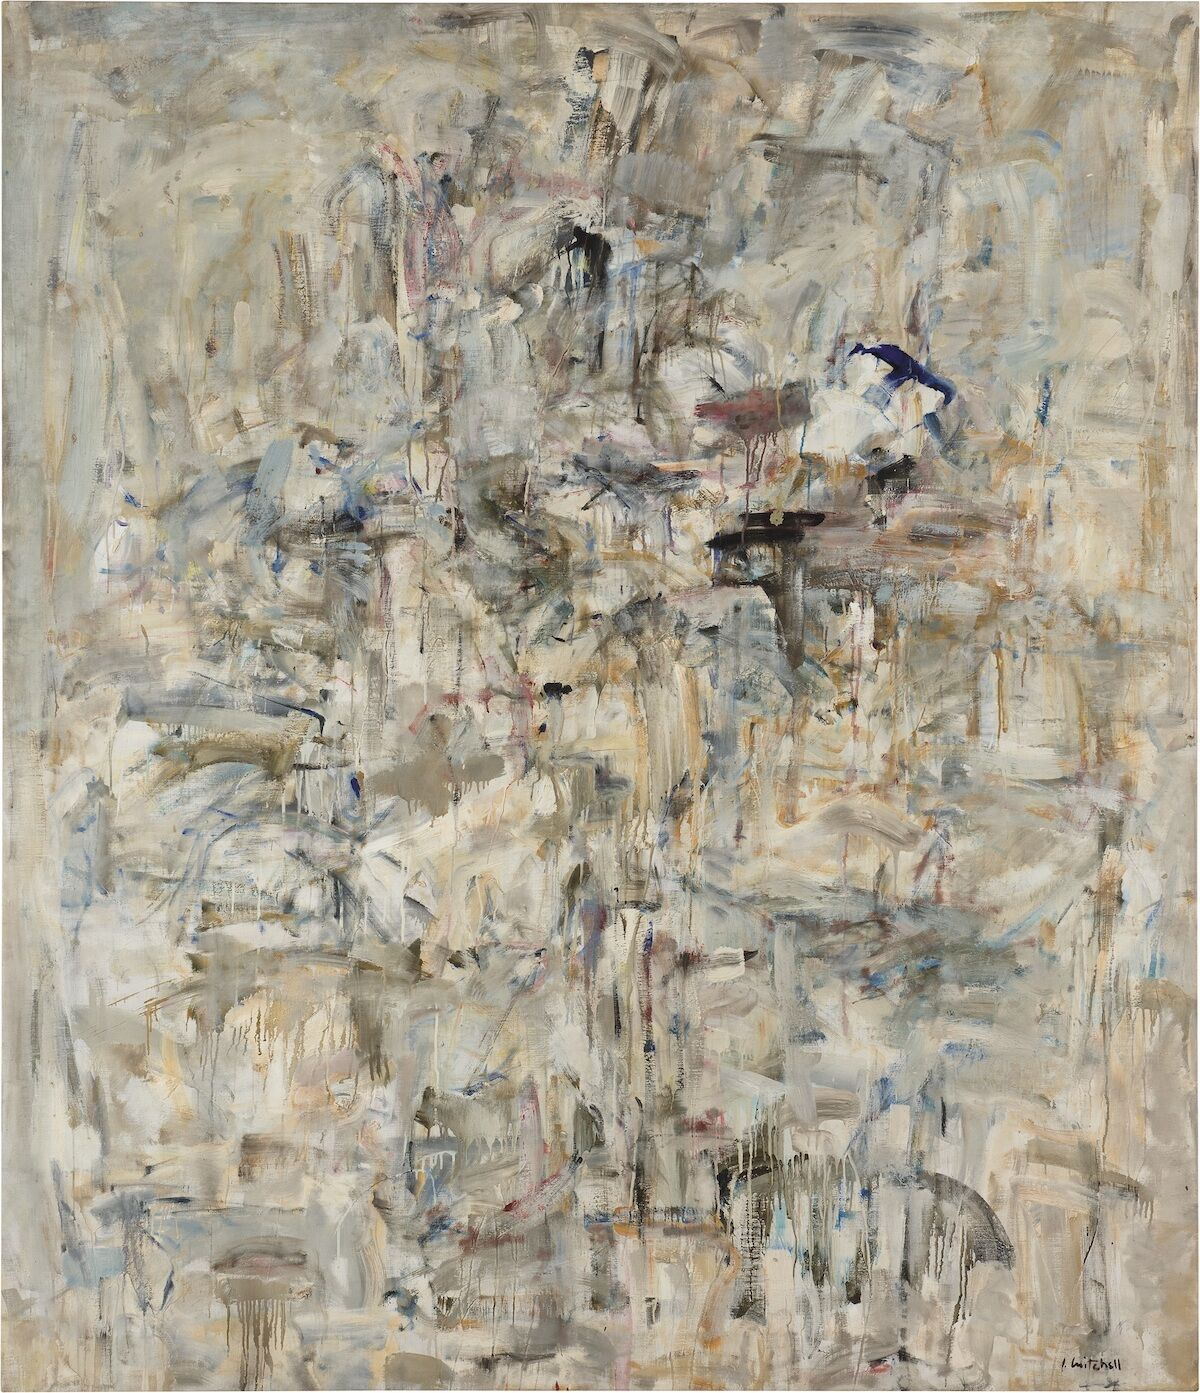 Joan Mitchell, Untitled, 1953–54. Courtesy of Phillips.